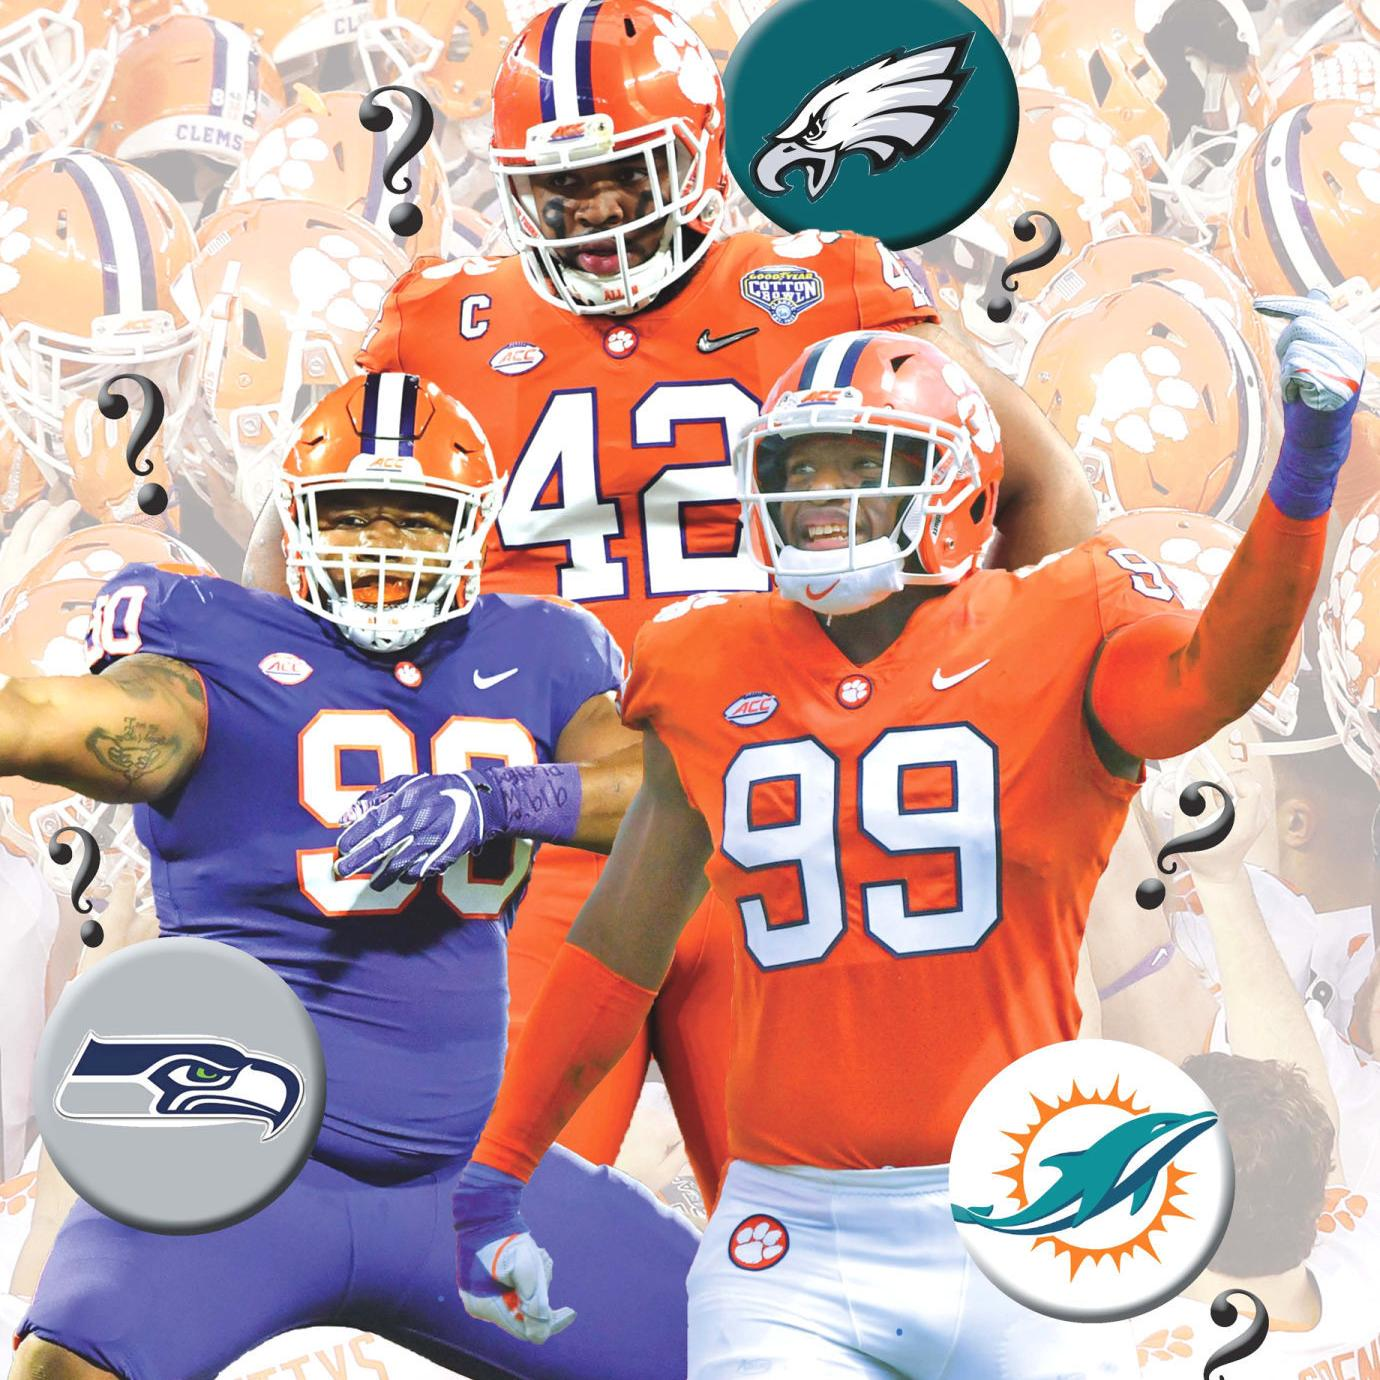 902bfd9f CLEMSON FOOTBALL: 3 Tigers may go in first round NFL Draft | Sports ...